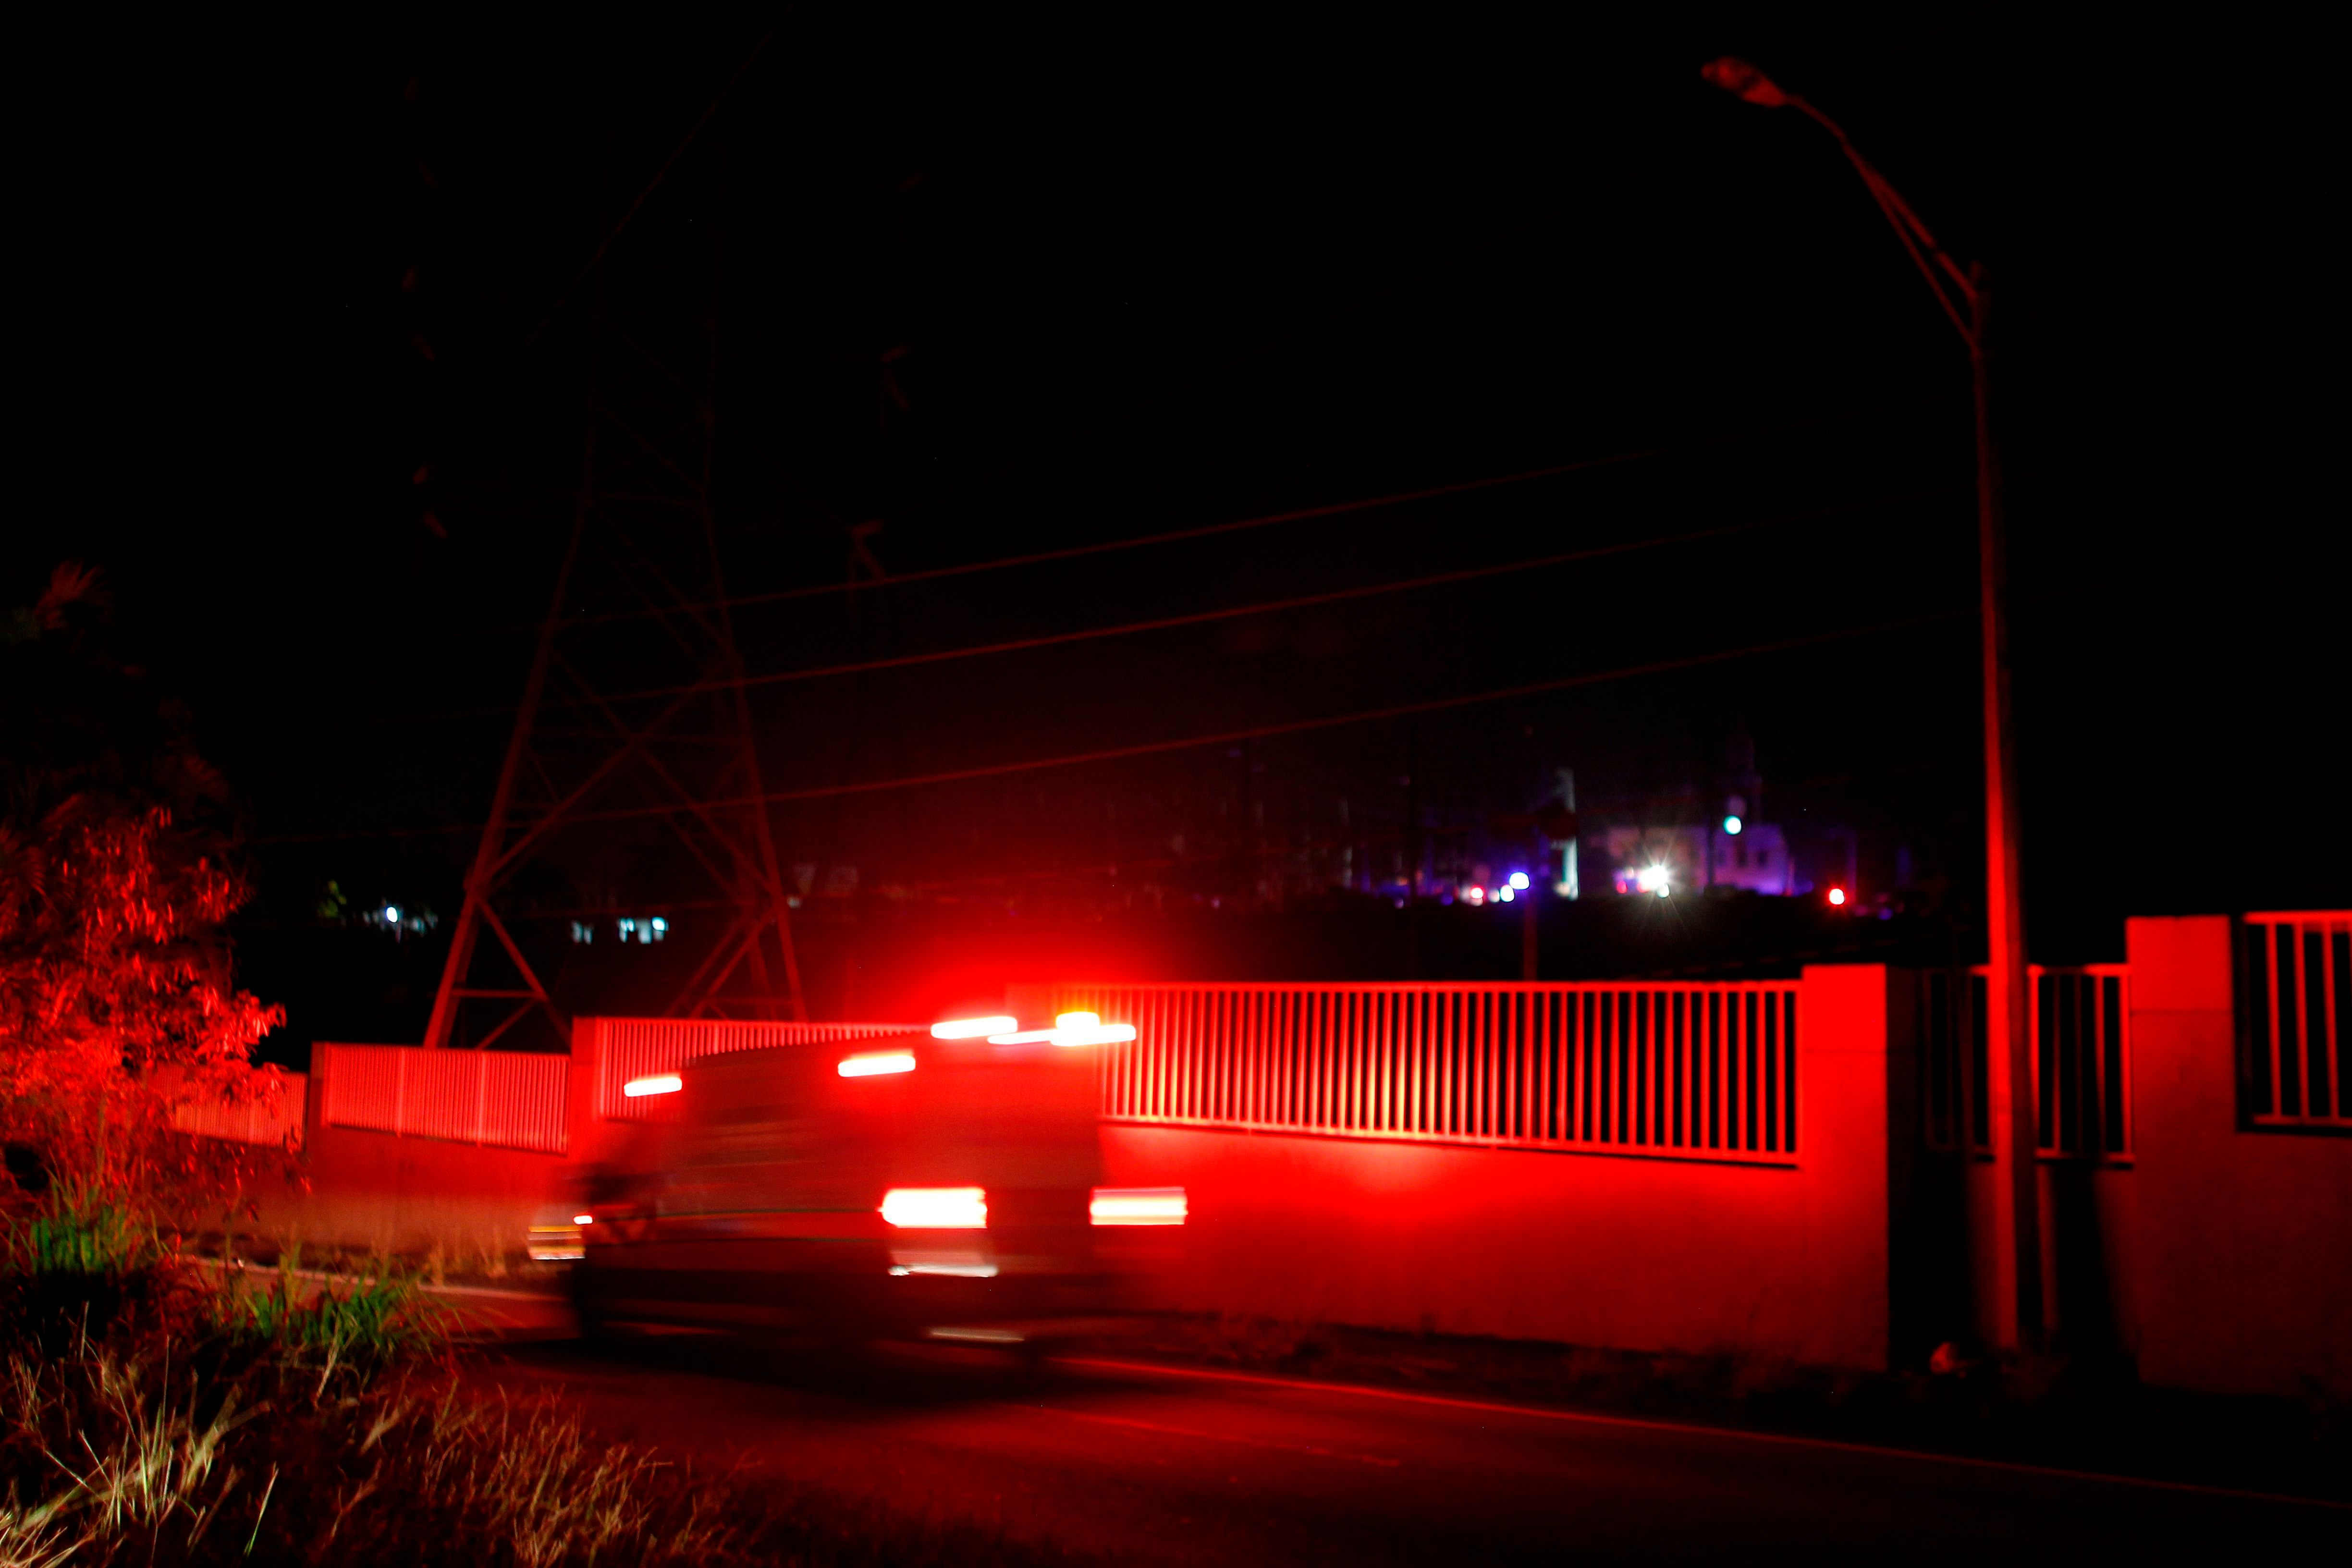 Ambulances are seen at the entrance of an electric substation after an explosion and fire was reported and caused a black out in parts of San Juan, on February 11, 2018. Most of San Juan and several other northern Puerto Rico municipalities were plunged into darkness Sunday night after the explosion, five months after two hurricanes destroyed the island's electricity network. The state electric power authority (AEE) said the blast was caused by a broken-down switch in Rio Piedras, San Juan, resulting in a blackout in central San Juan and Palo Seco in the north. 'We have personnel working to restore the system as soon as possible,' the AEE said.  / AFP PHOTO / Ricardo ARDUENGO        (Photo credit should read RICARDO ARDUENGO/AFP/Getty Images)